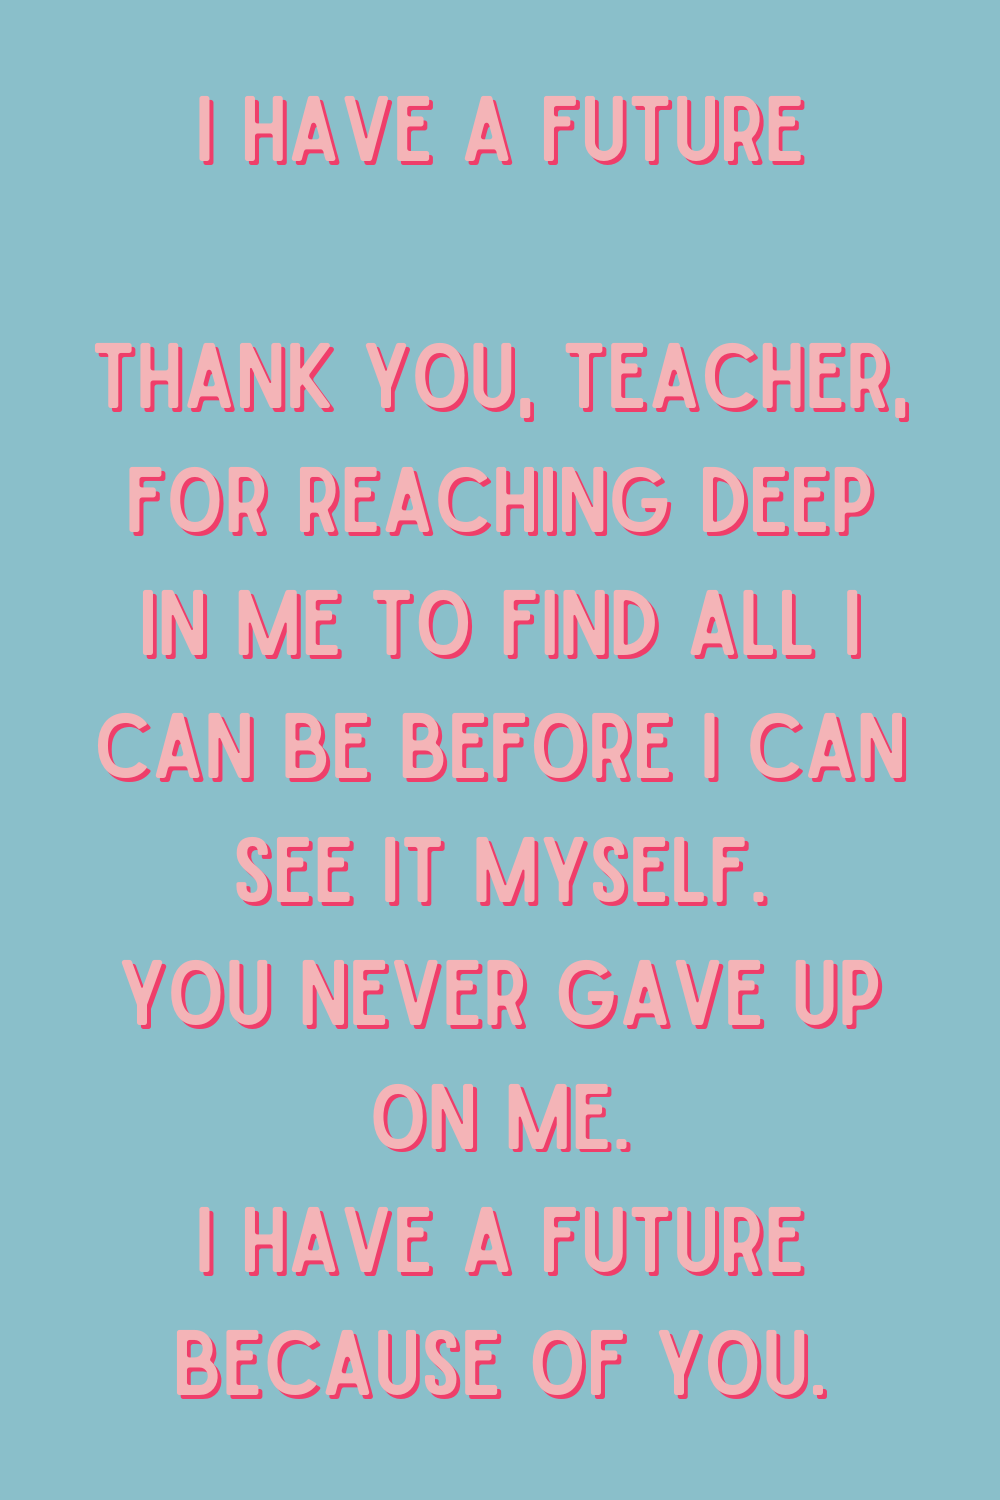 Quotes to write on card for teacher appreciation week.